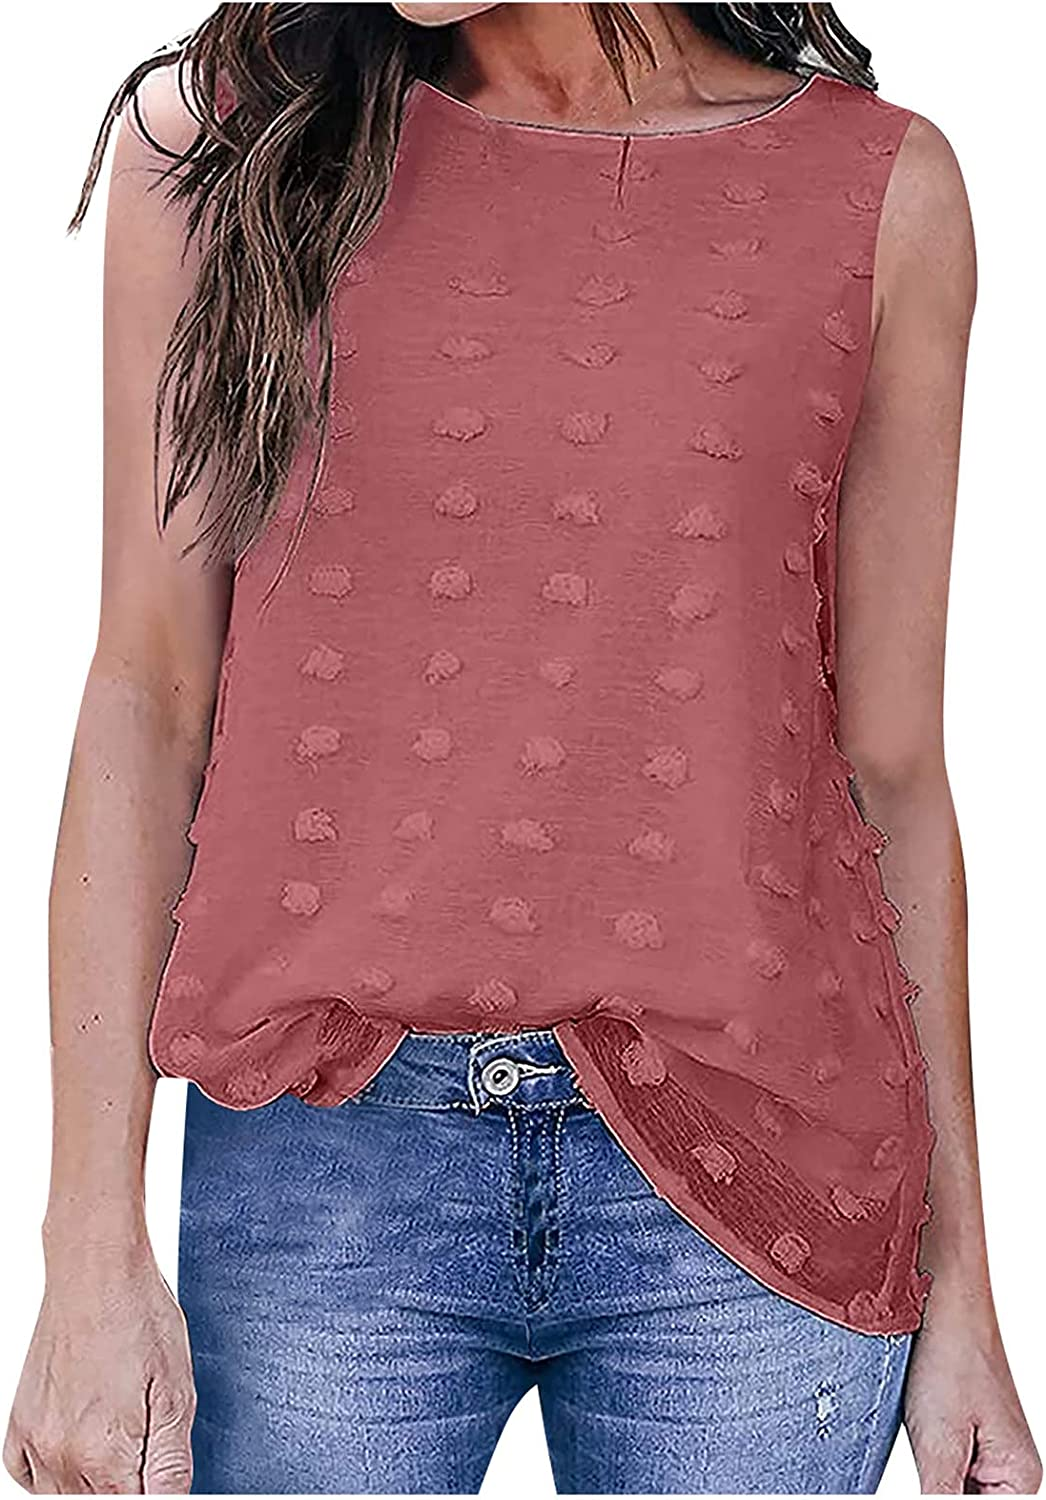 Women Fashion Sleeveless Tank Round Neck Solid Color T-Shirt Vest Top